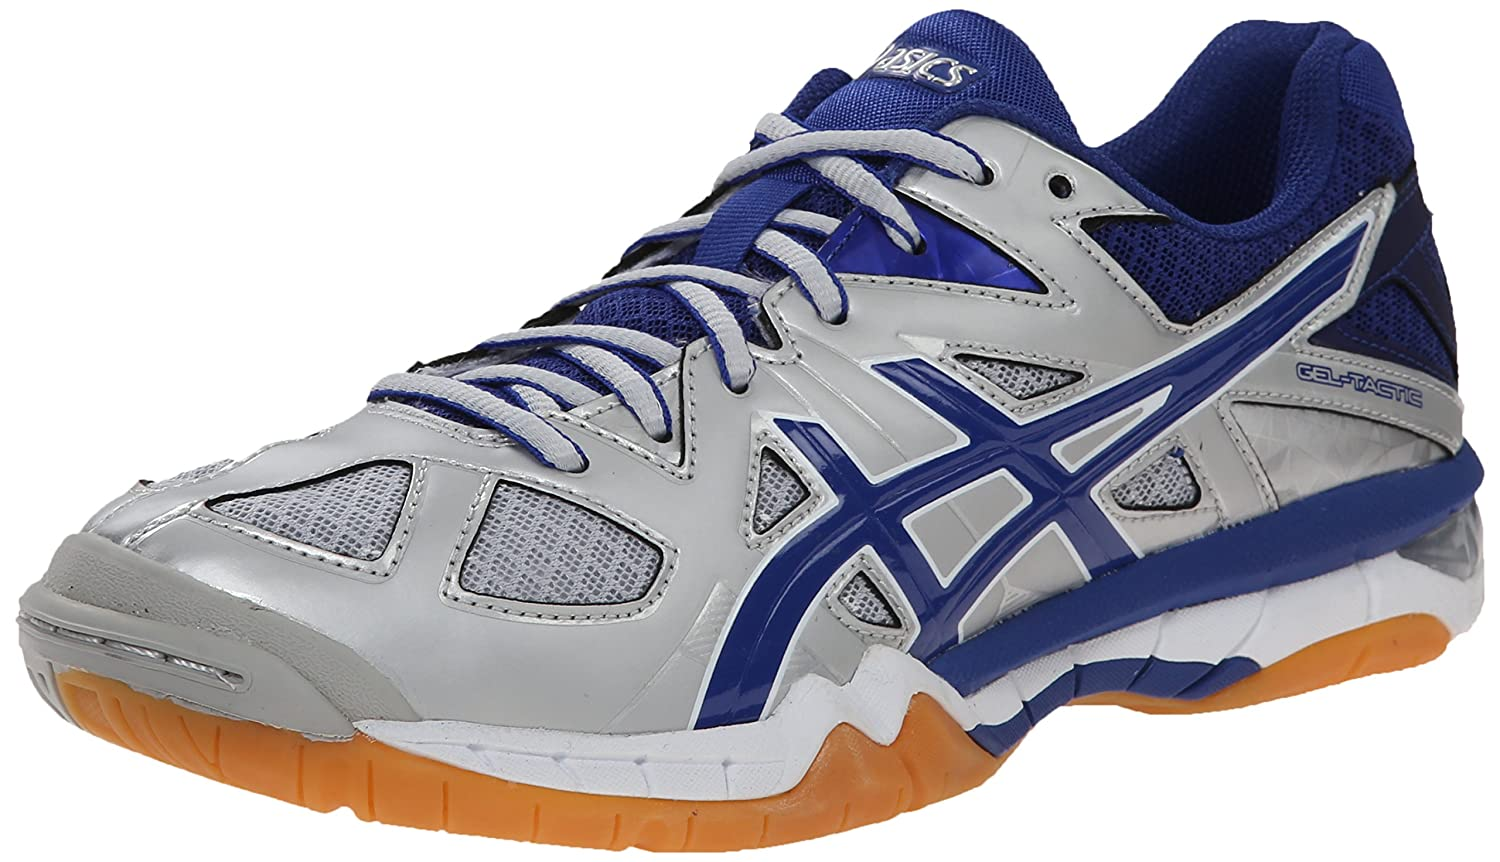 ASICS Women's Gel Tactic Volleyball Shoe B00Q2JPAVW 6.5 B(M) US|Silver/Royal/White